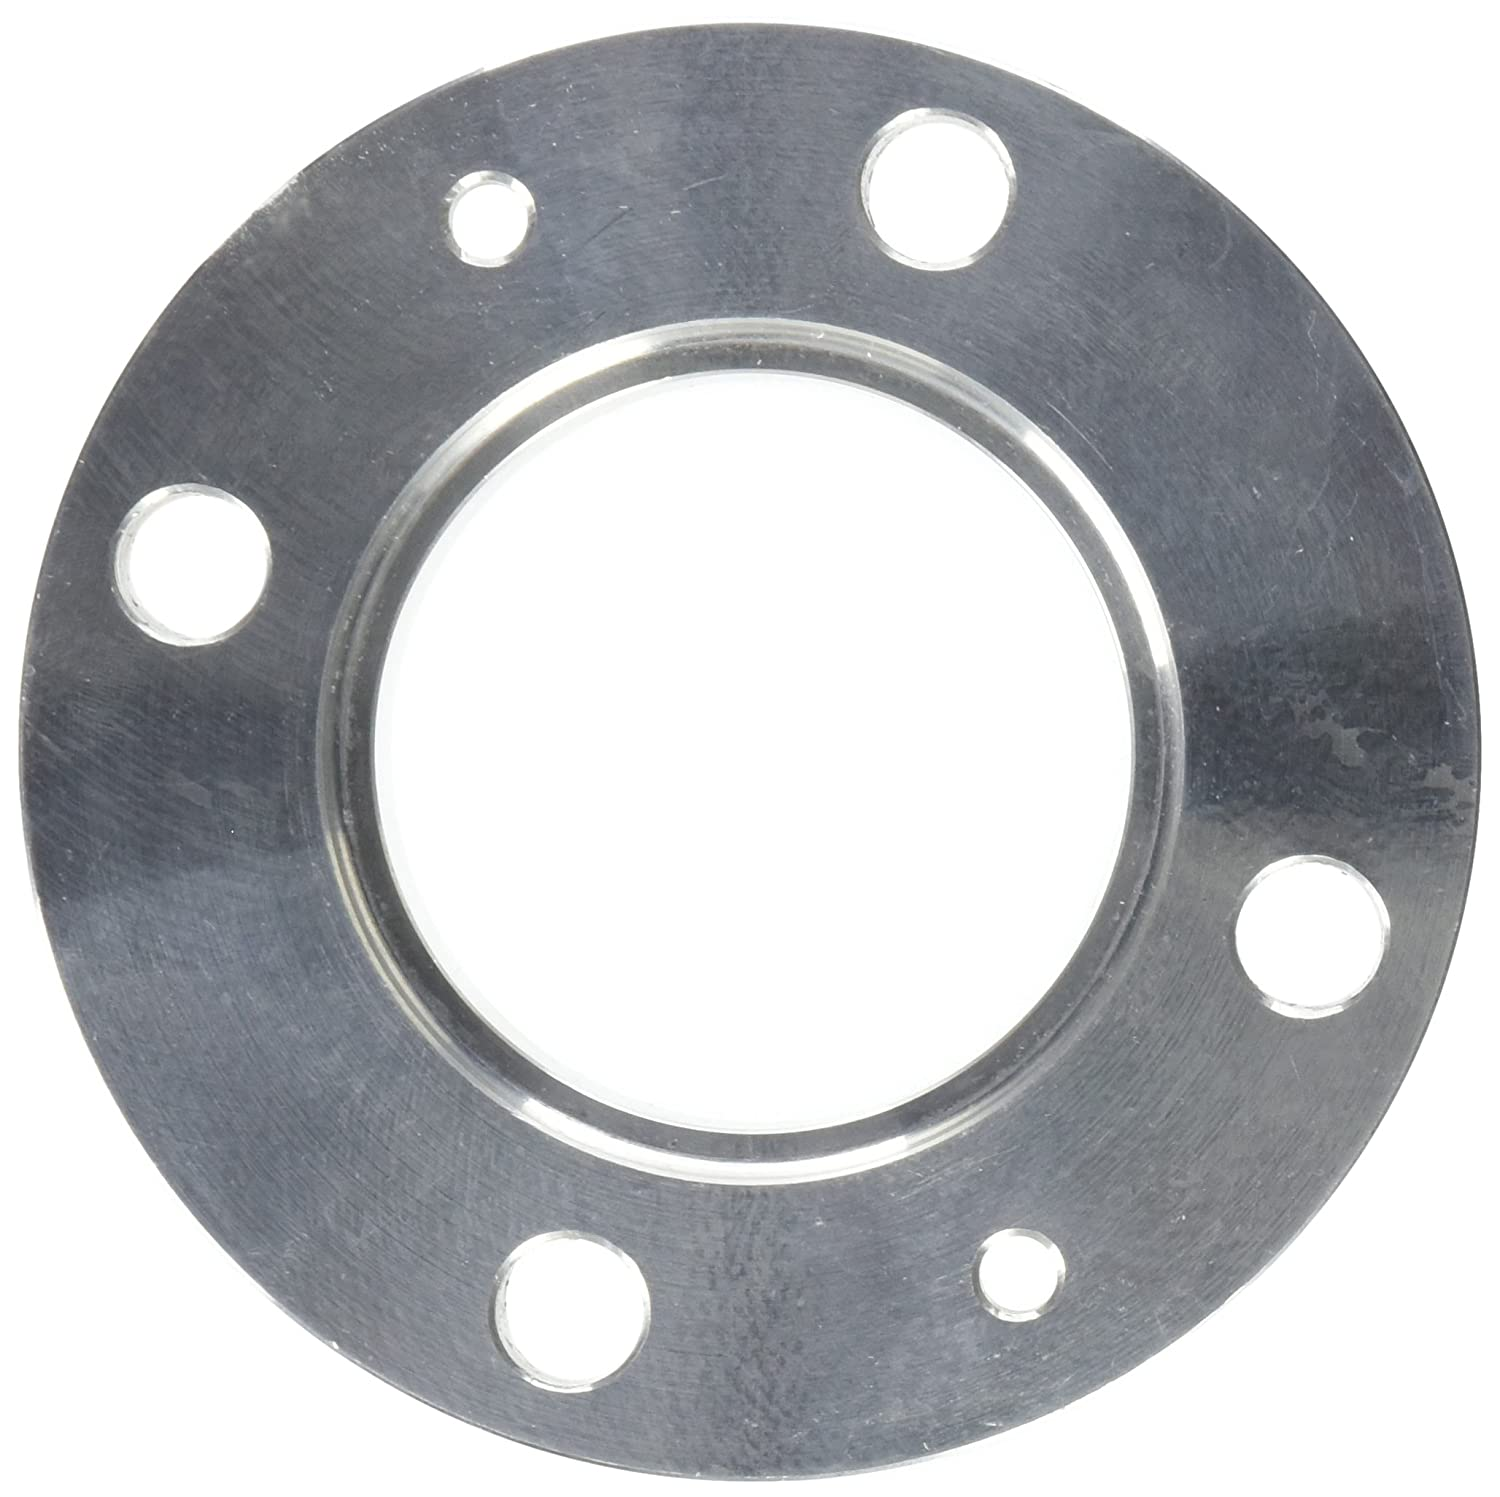 Professional Products 81008 0.88' Thick Spacer